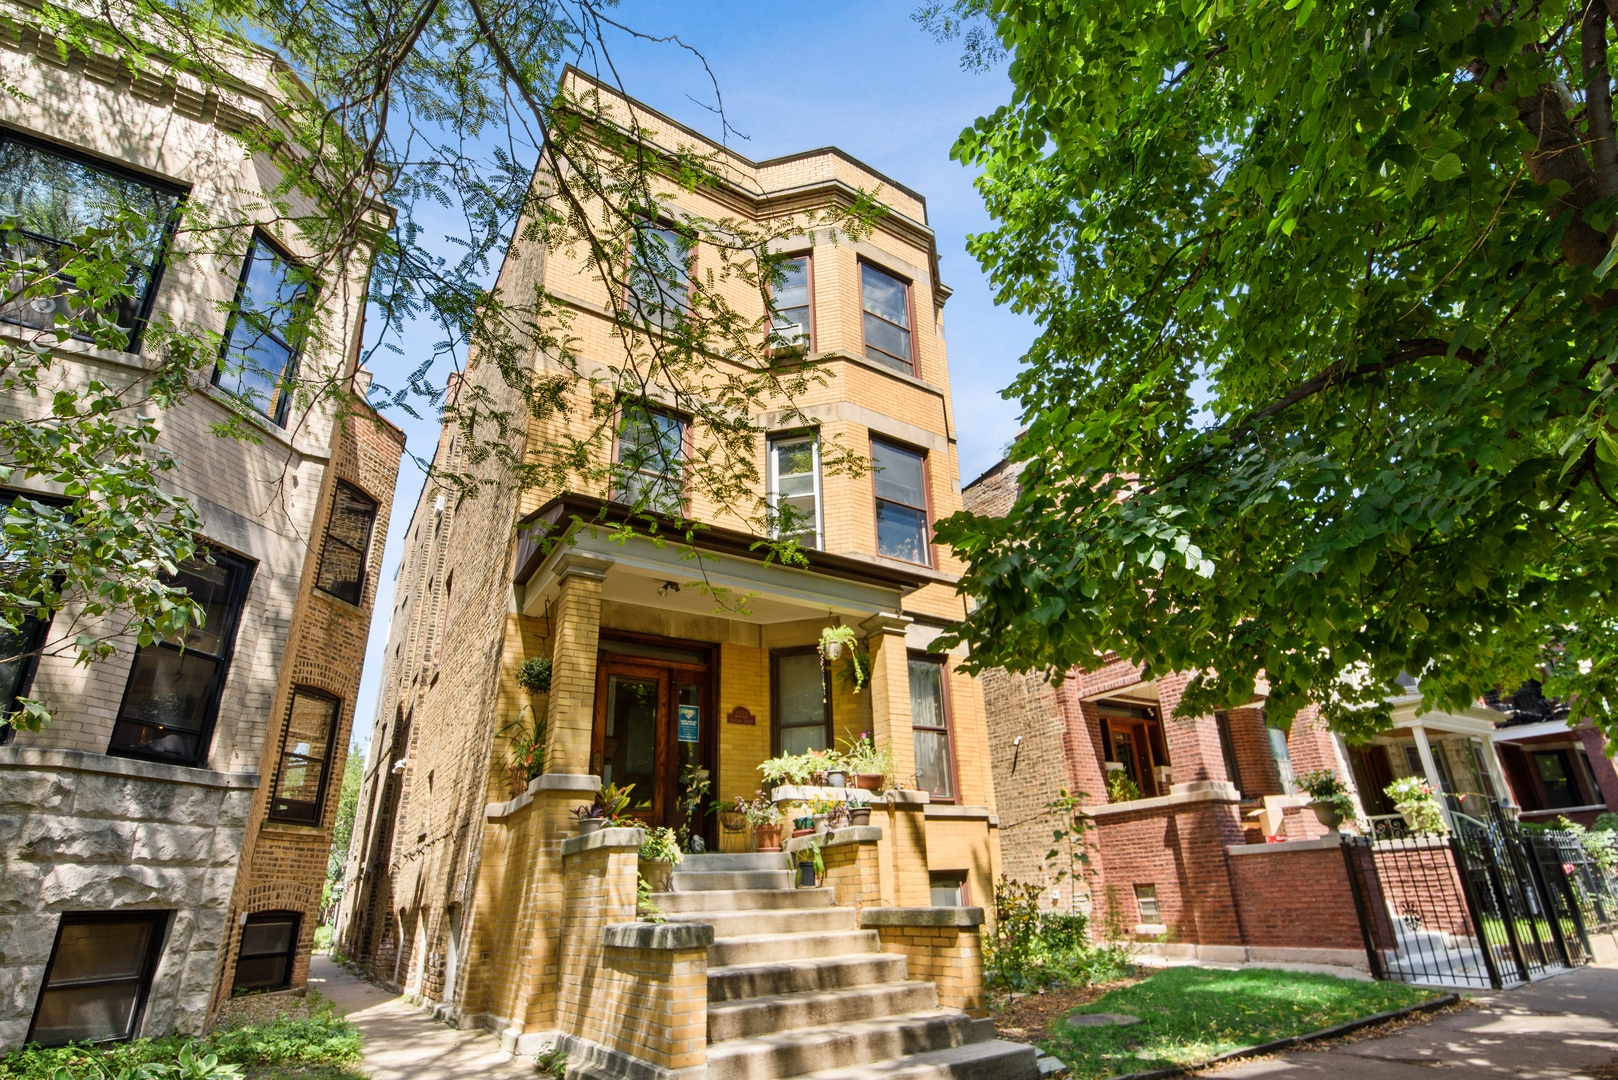 Wide brick 4 flat on a quiet block in the heart of Lincoln Square.  Top 3 units each have 3 wide bed